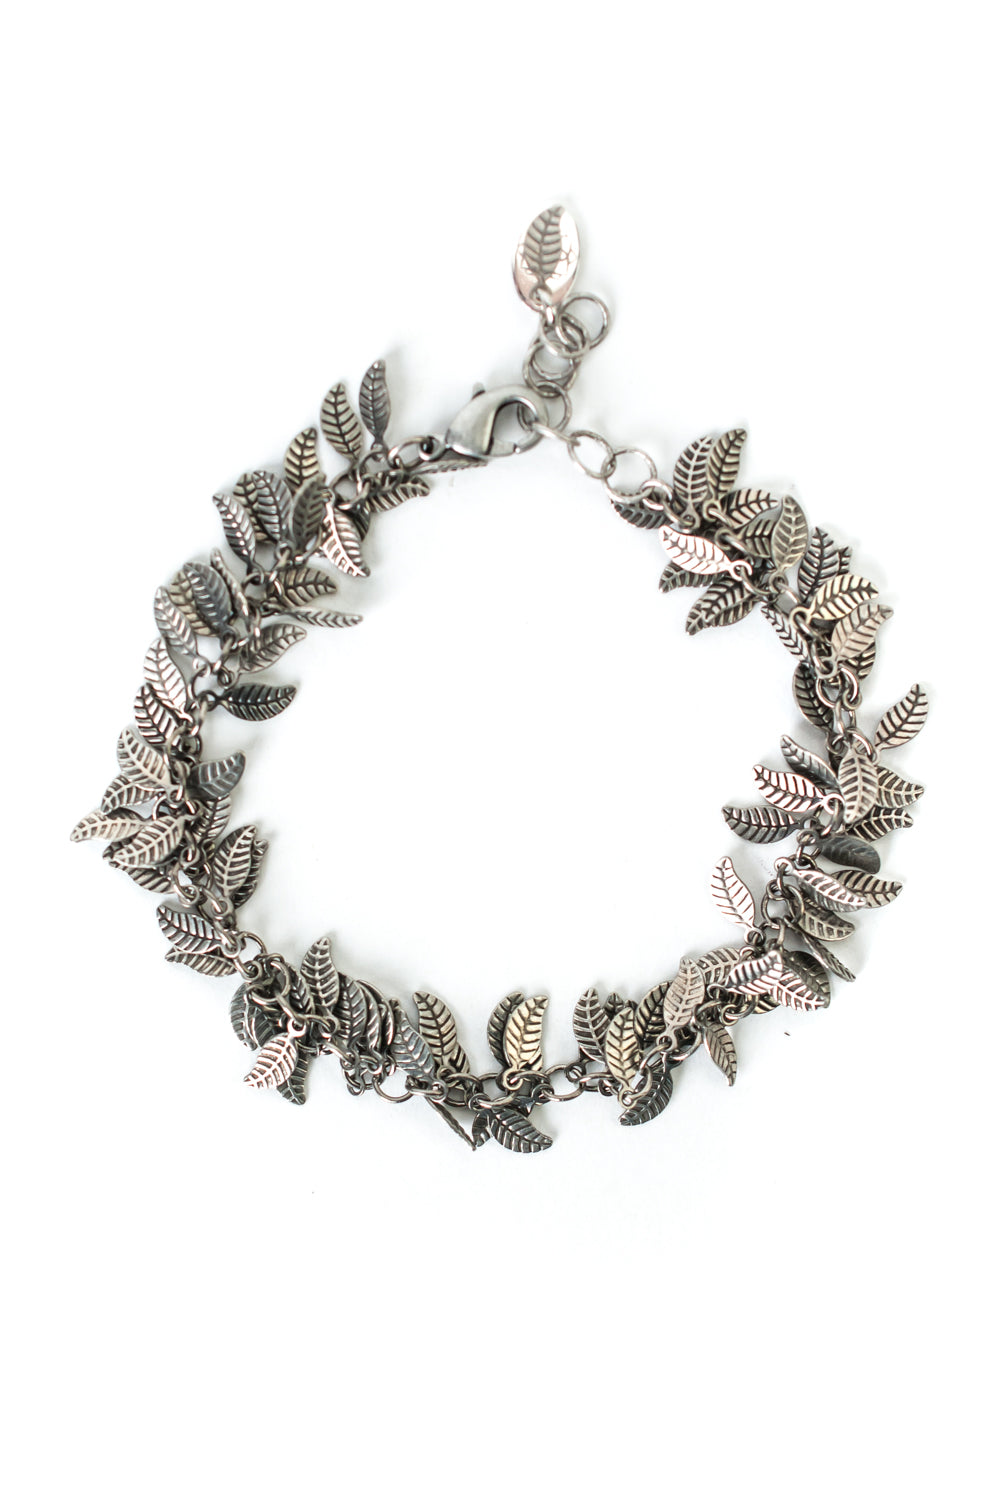 "Refresh 7-8"" Antique Silver Leaf Bracelet"